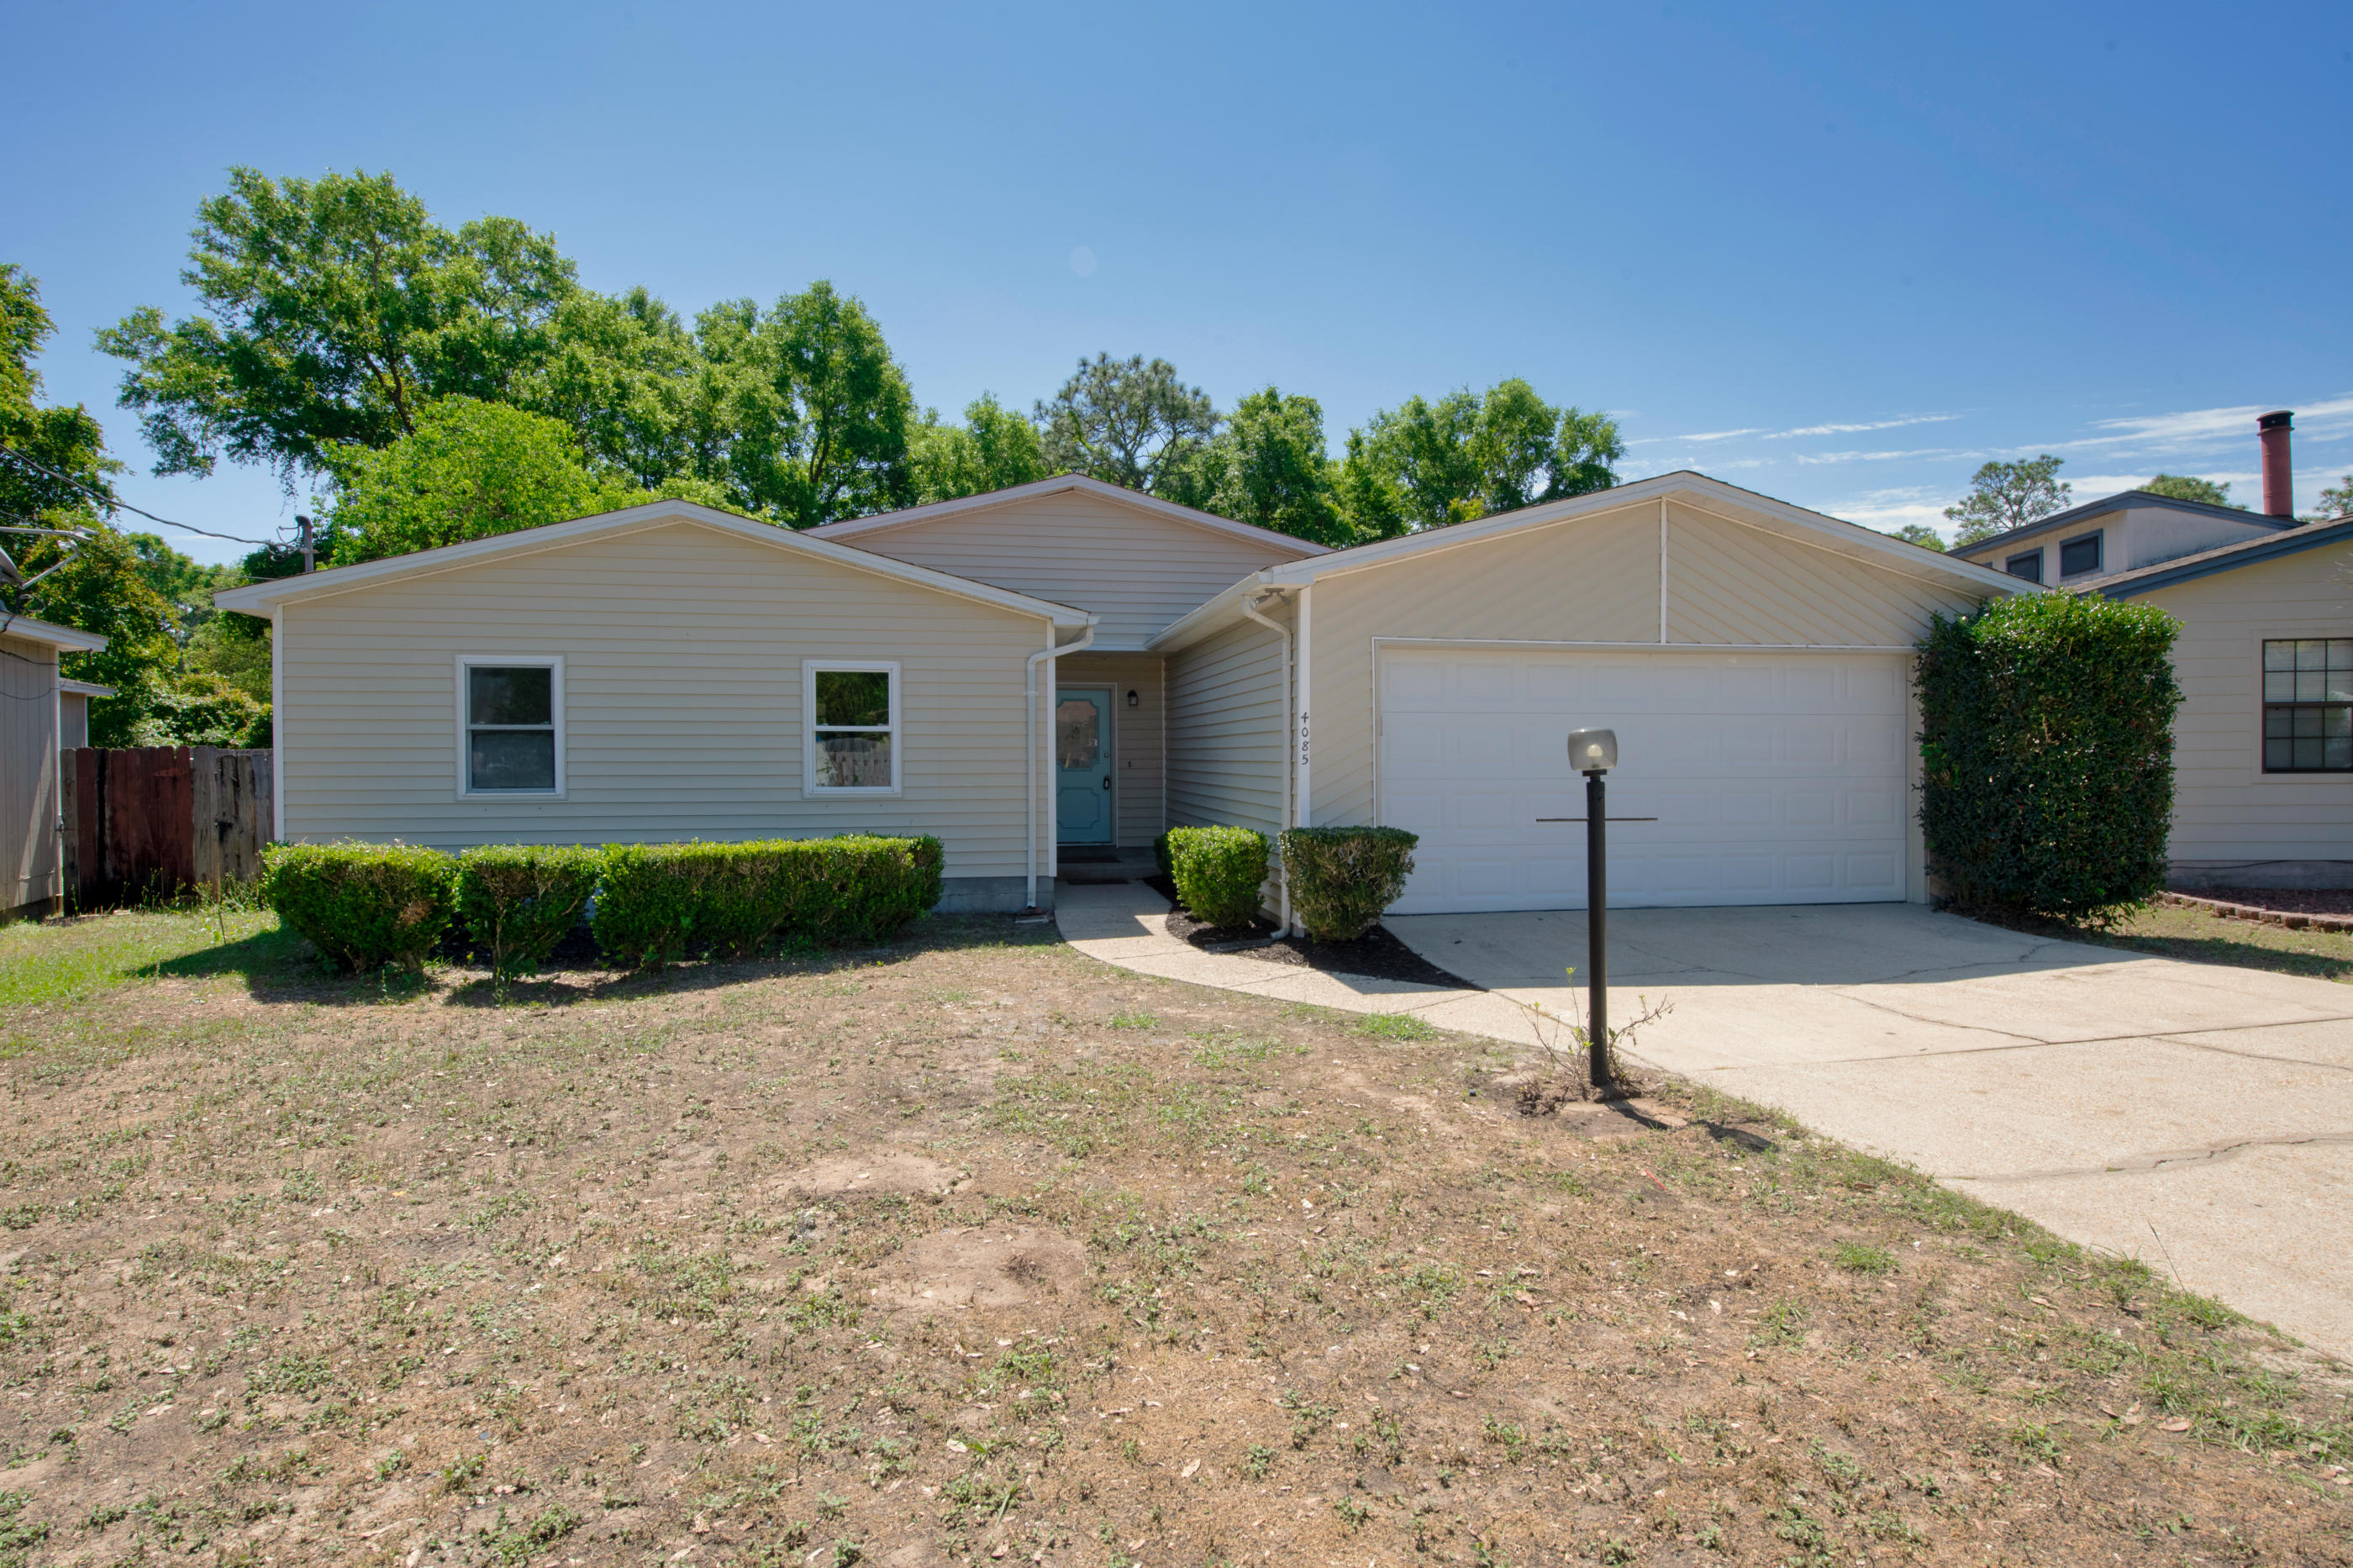 Renovated 3 Bed 2 Home in Pensacola with large yard! The kitchen features NEW White Shaker Cabinets,